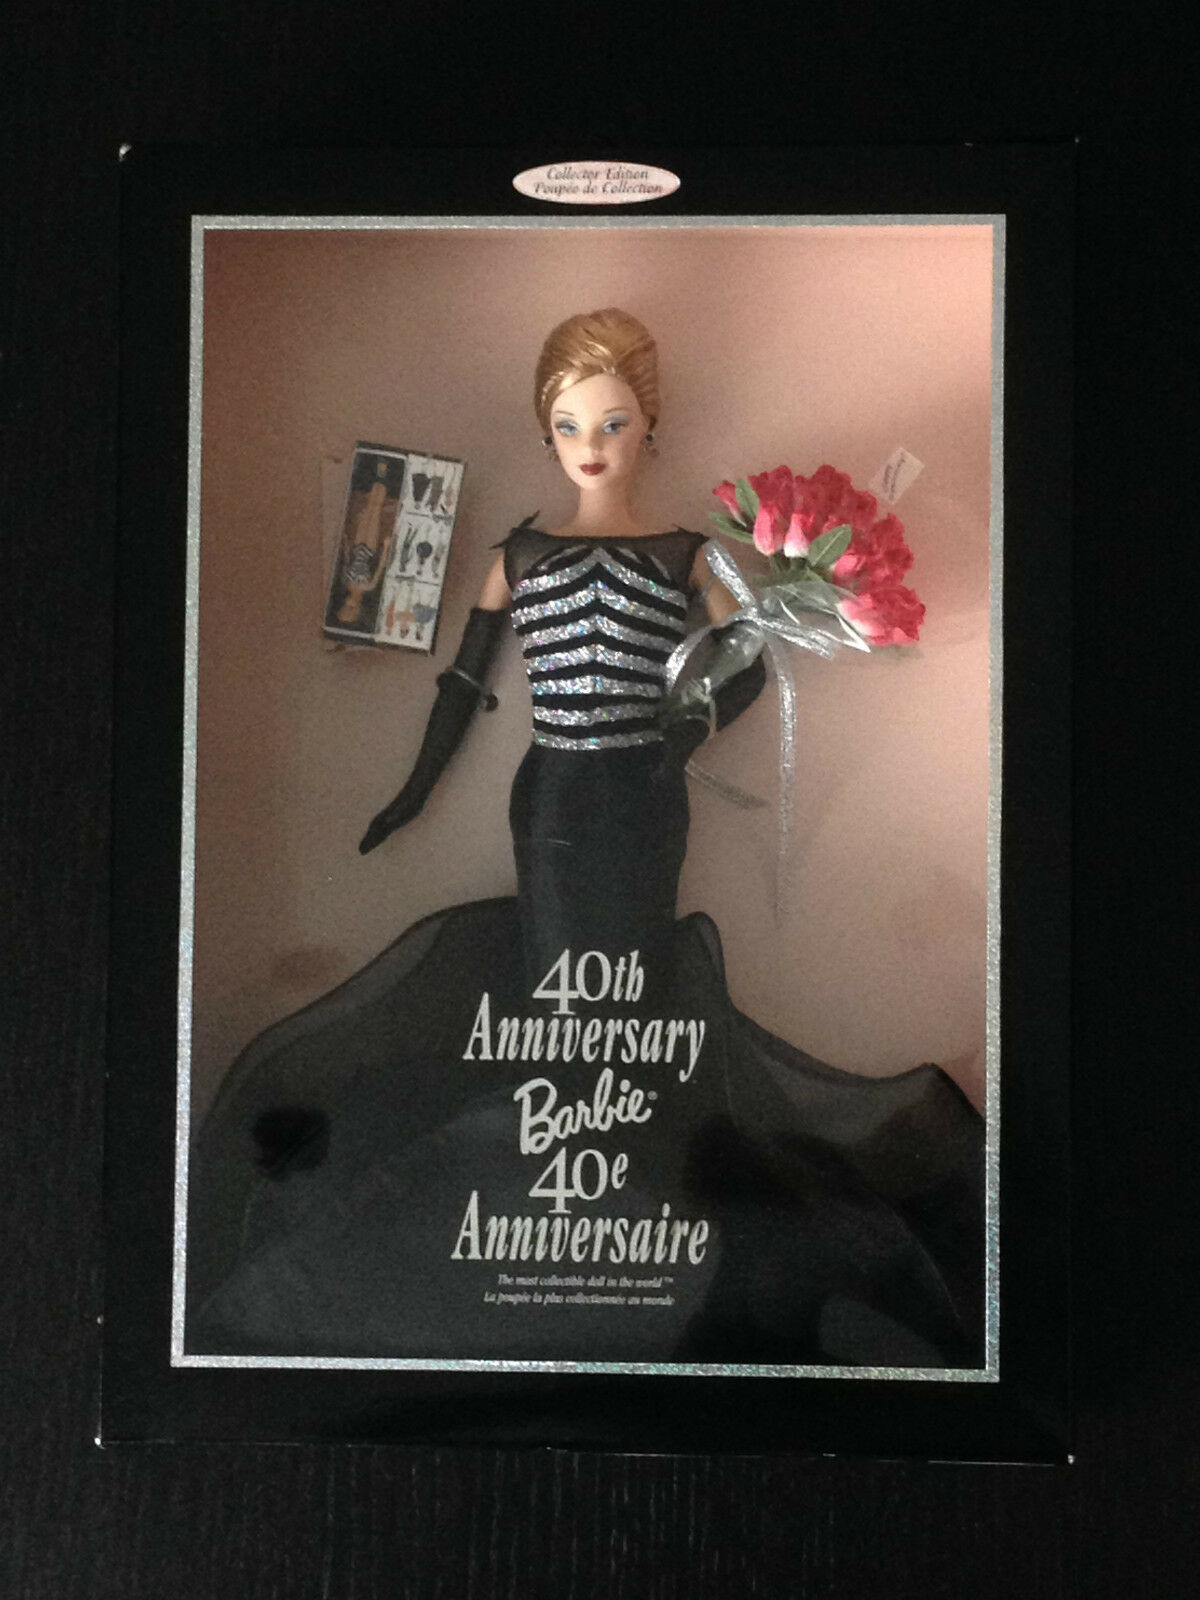 BARBIE DOLL MATTEL - 40 TH ANNIVERSARY - 40 ANIVERSARIO - 1999 -NEW IN BOX 21384